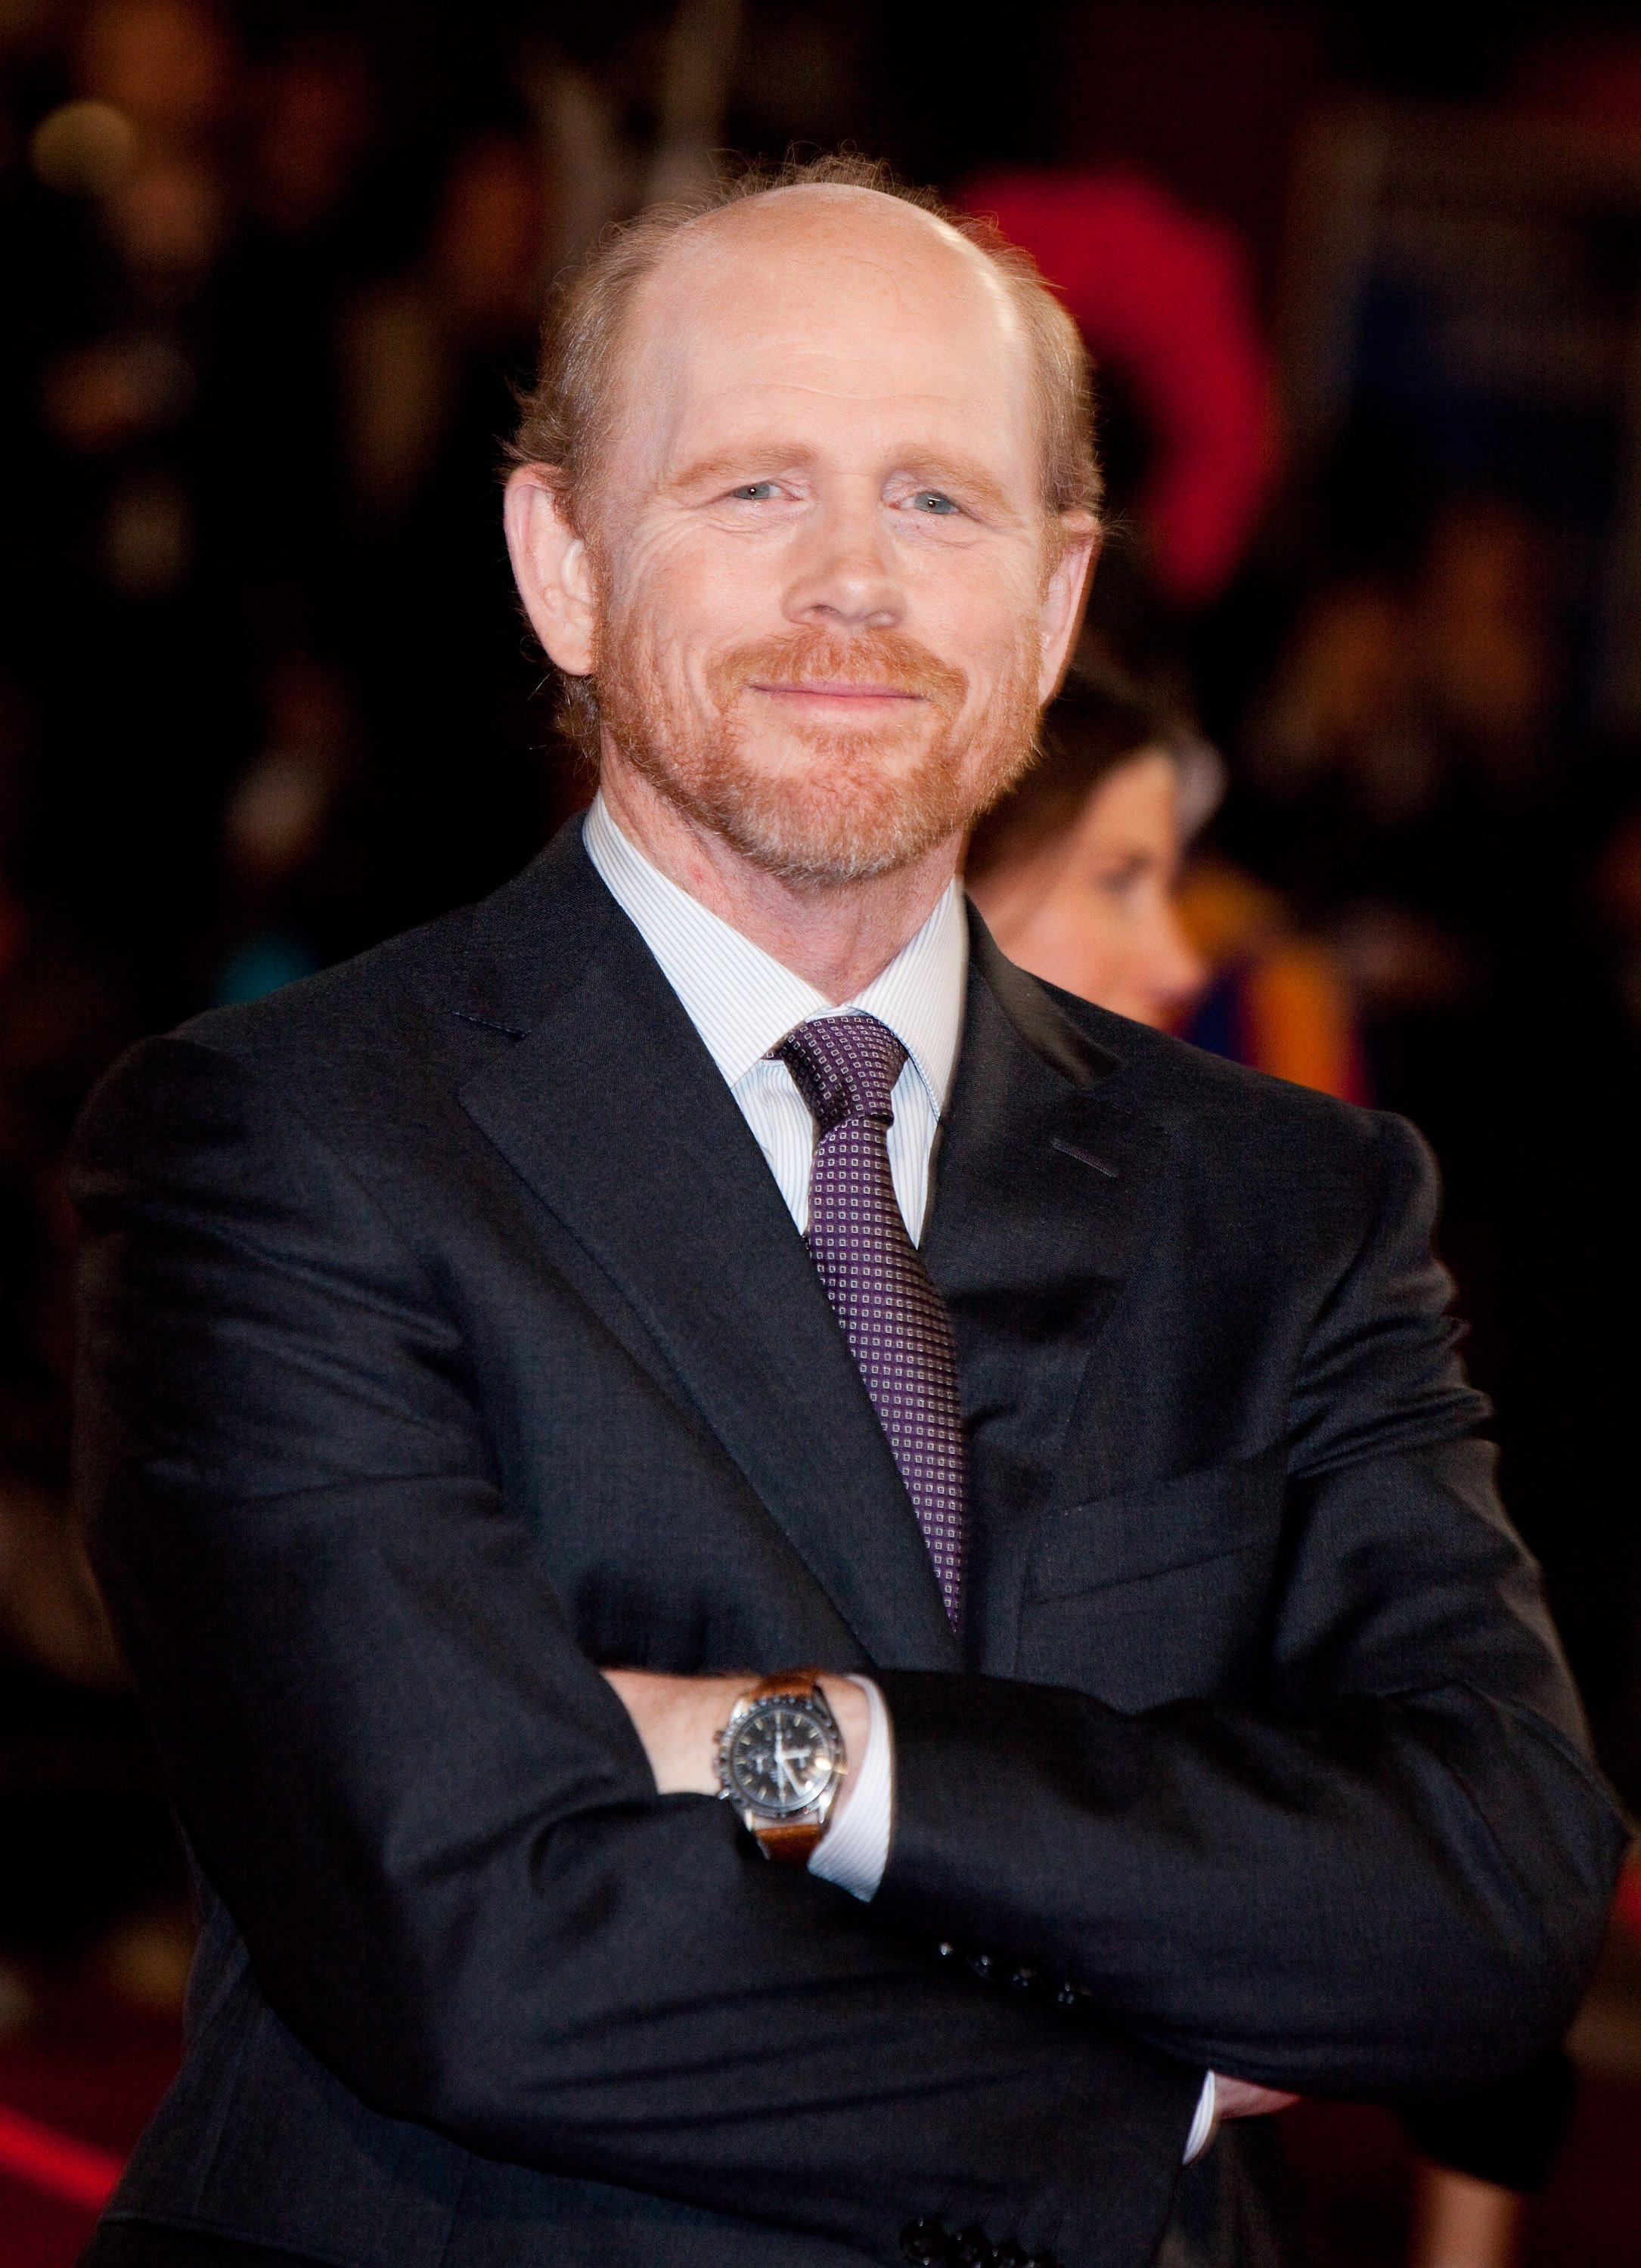 Ron Howard attends the world premiere of 'Angels & Demons' at Auditorium Parco Della Musica on May 4, 2009 in Rome, Italy